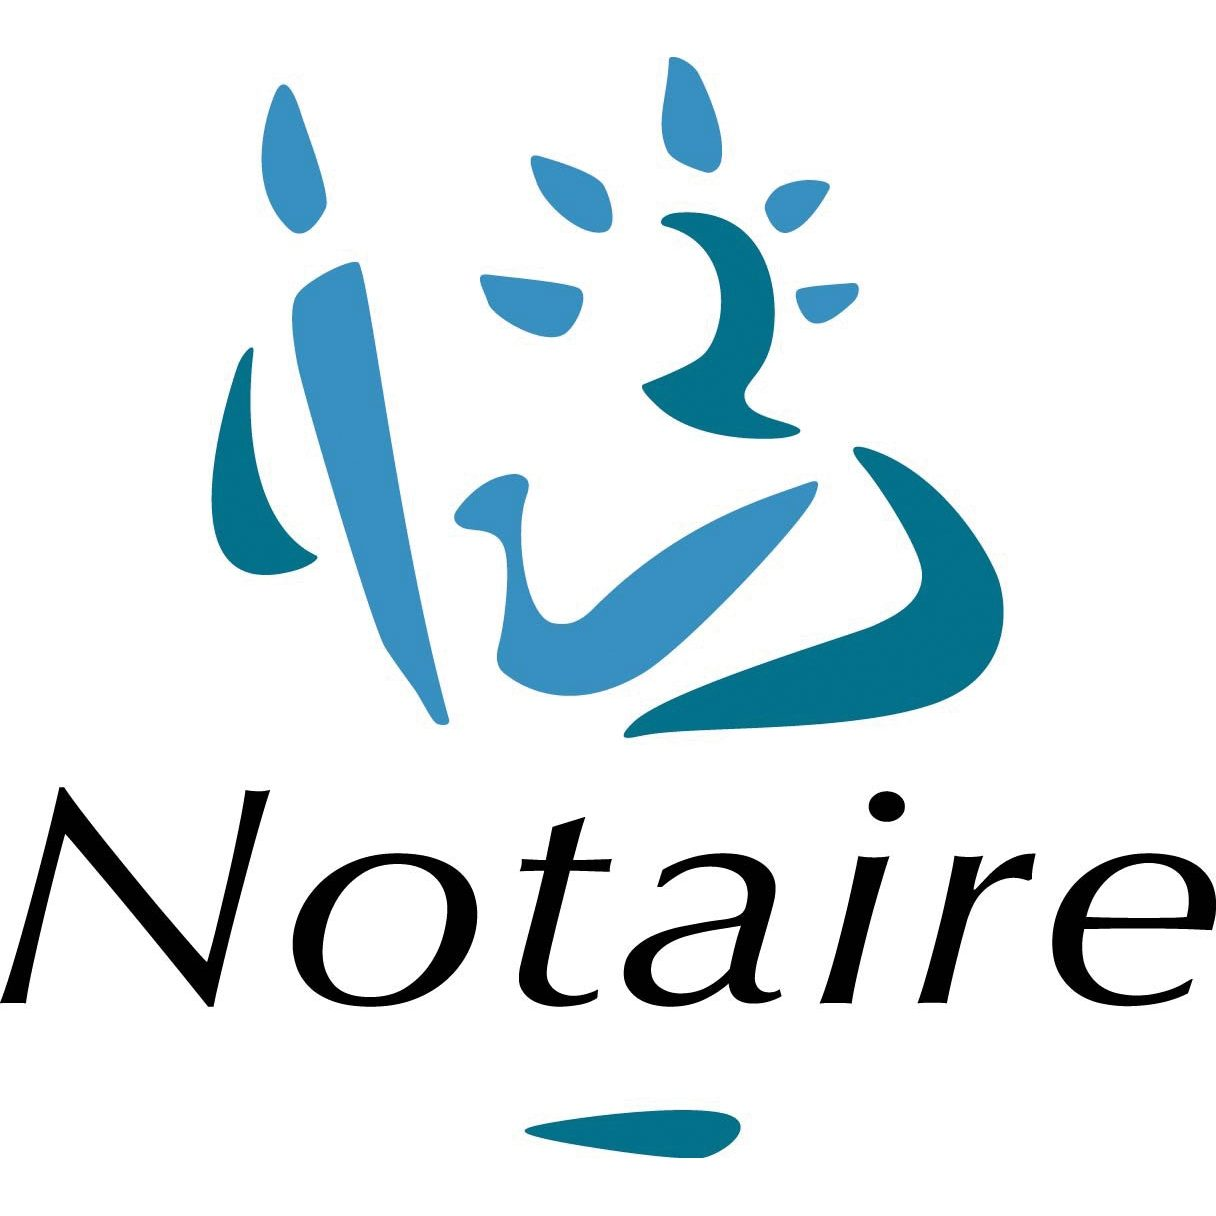 Notaire fees? How much are they?